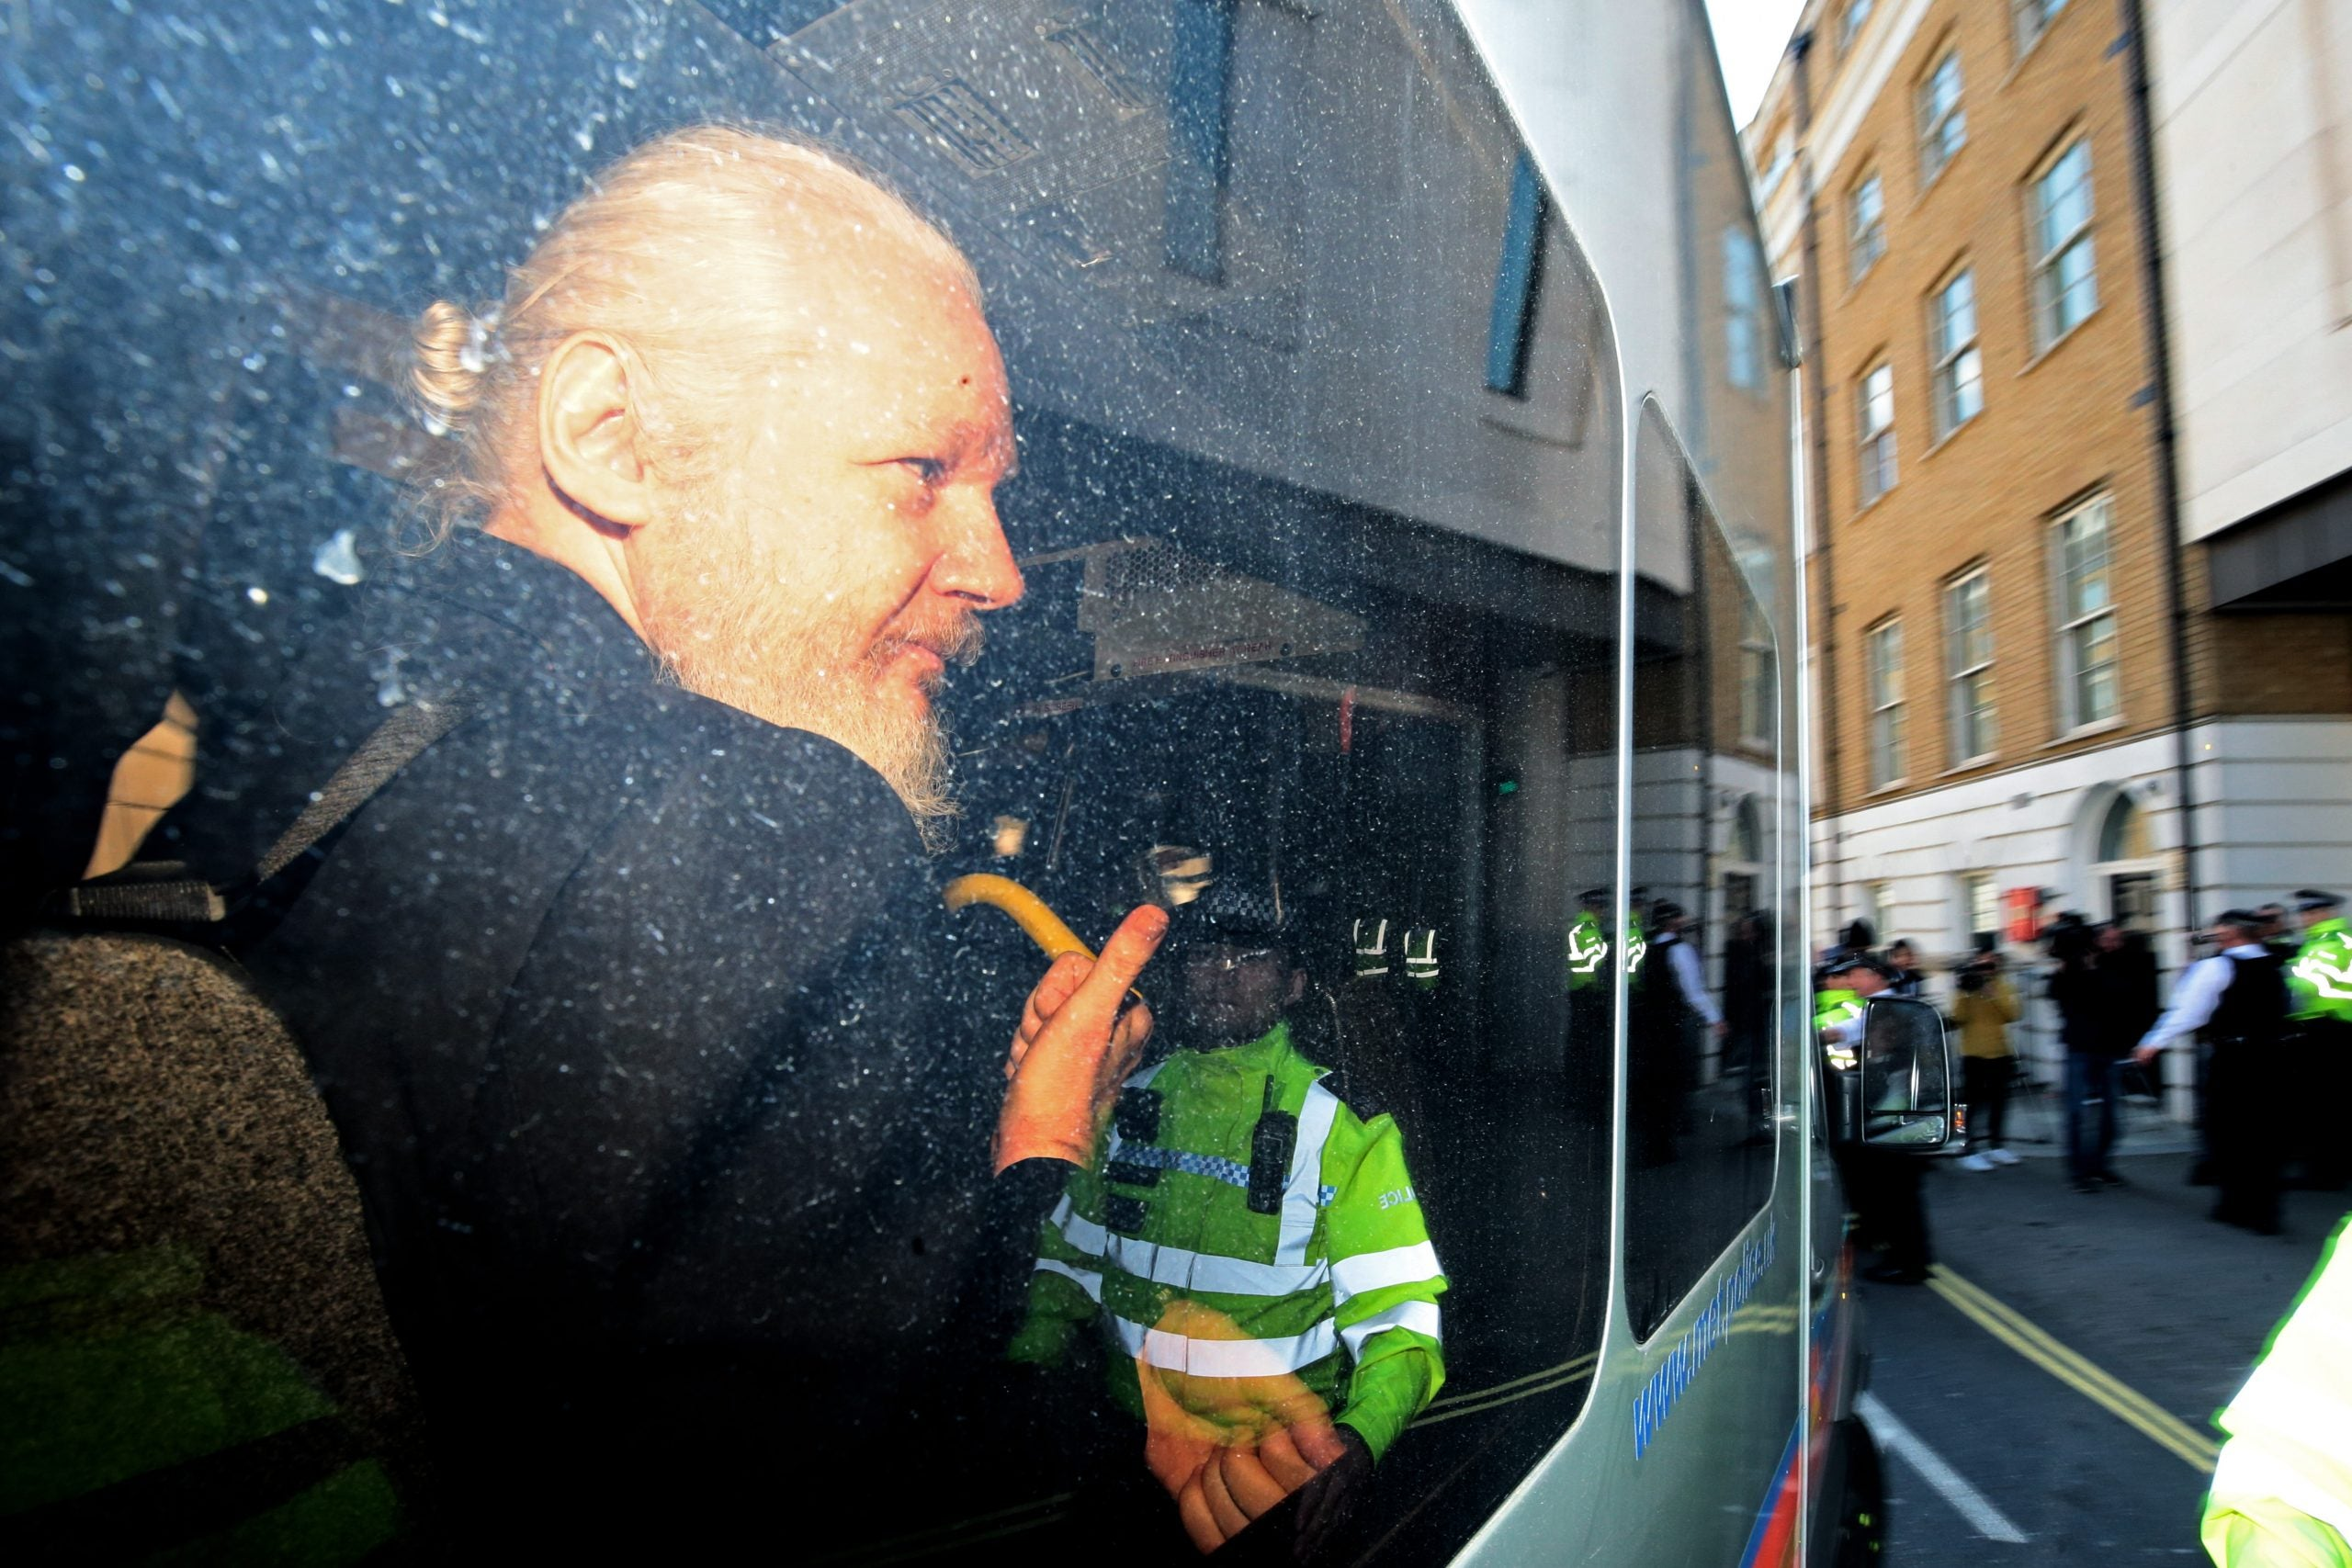 The arrest of Julian Assange has sparked a domestic political row